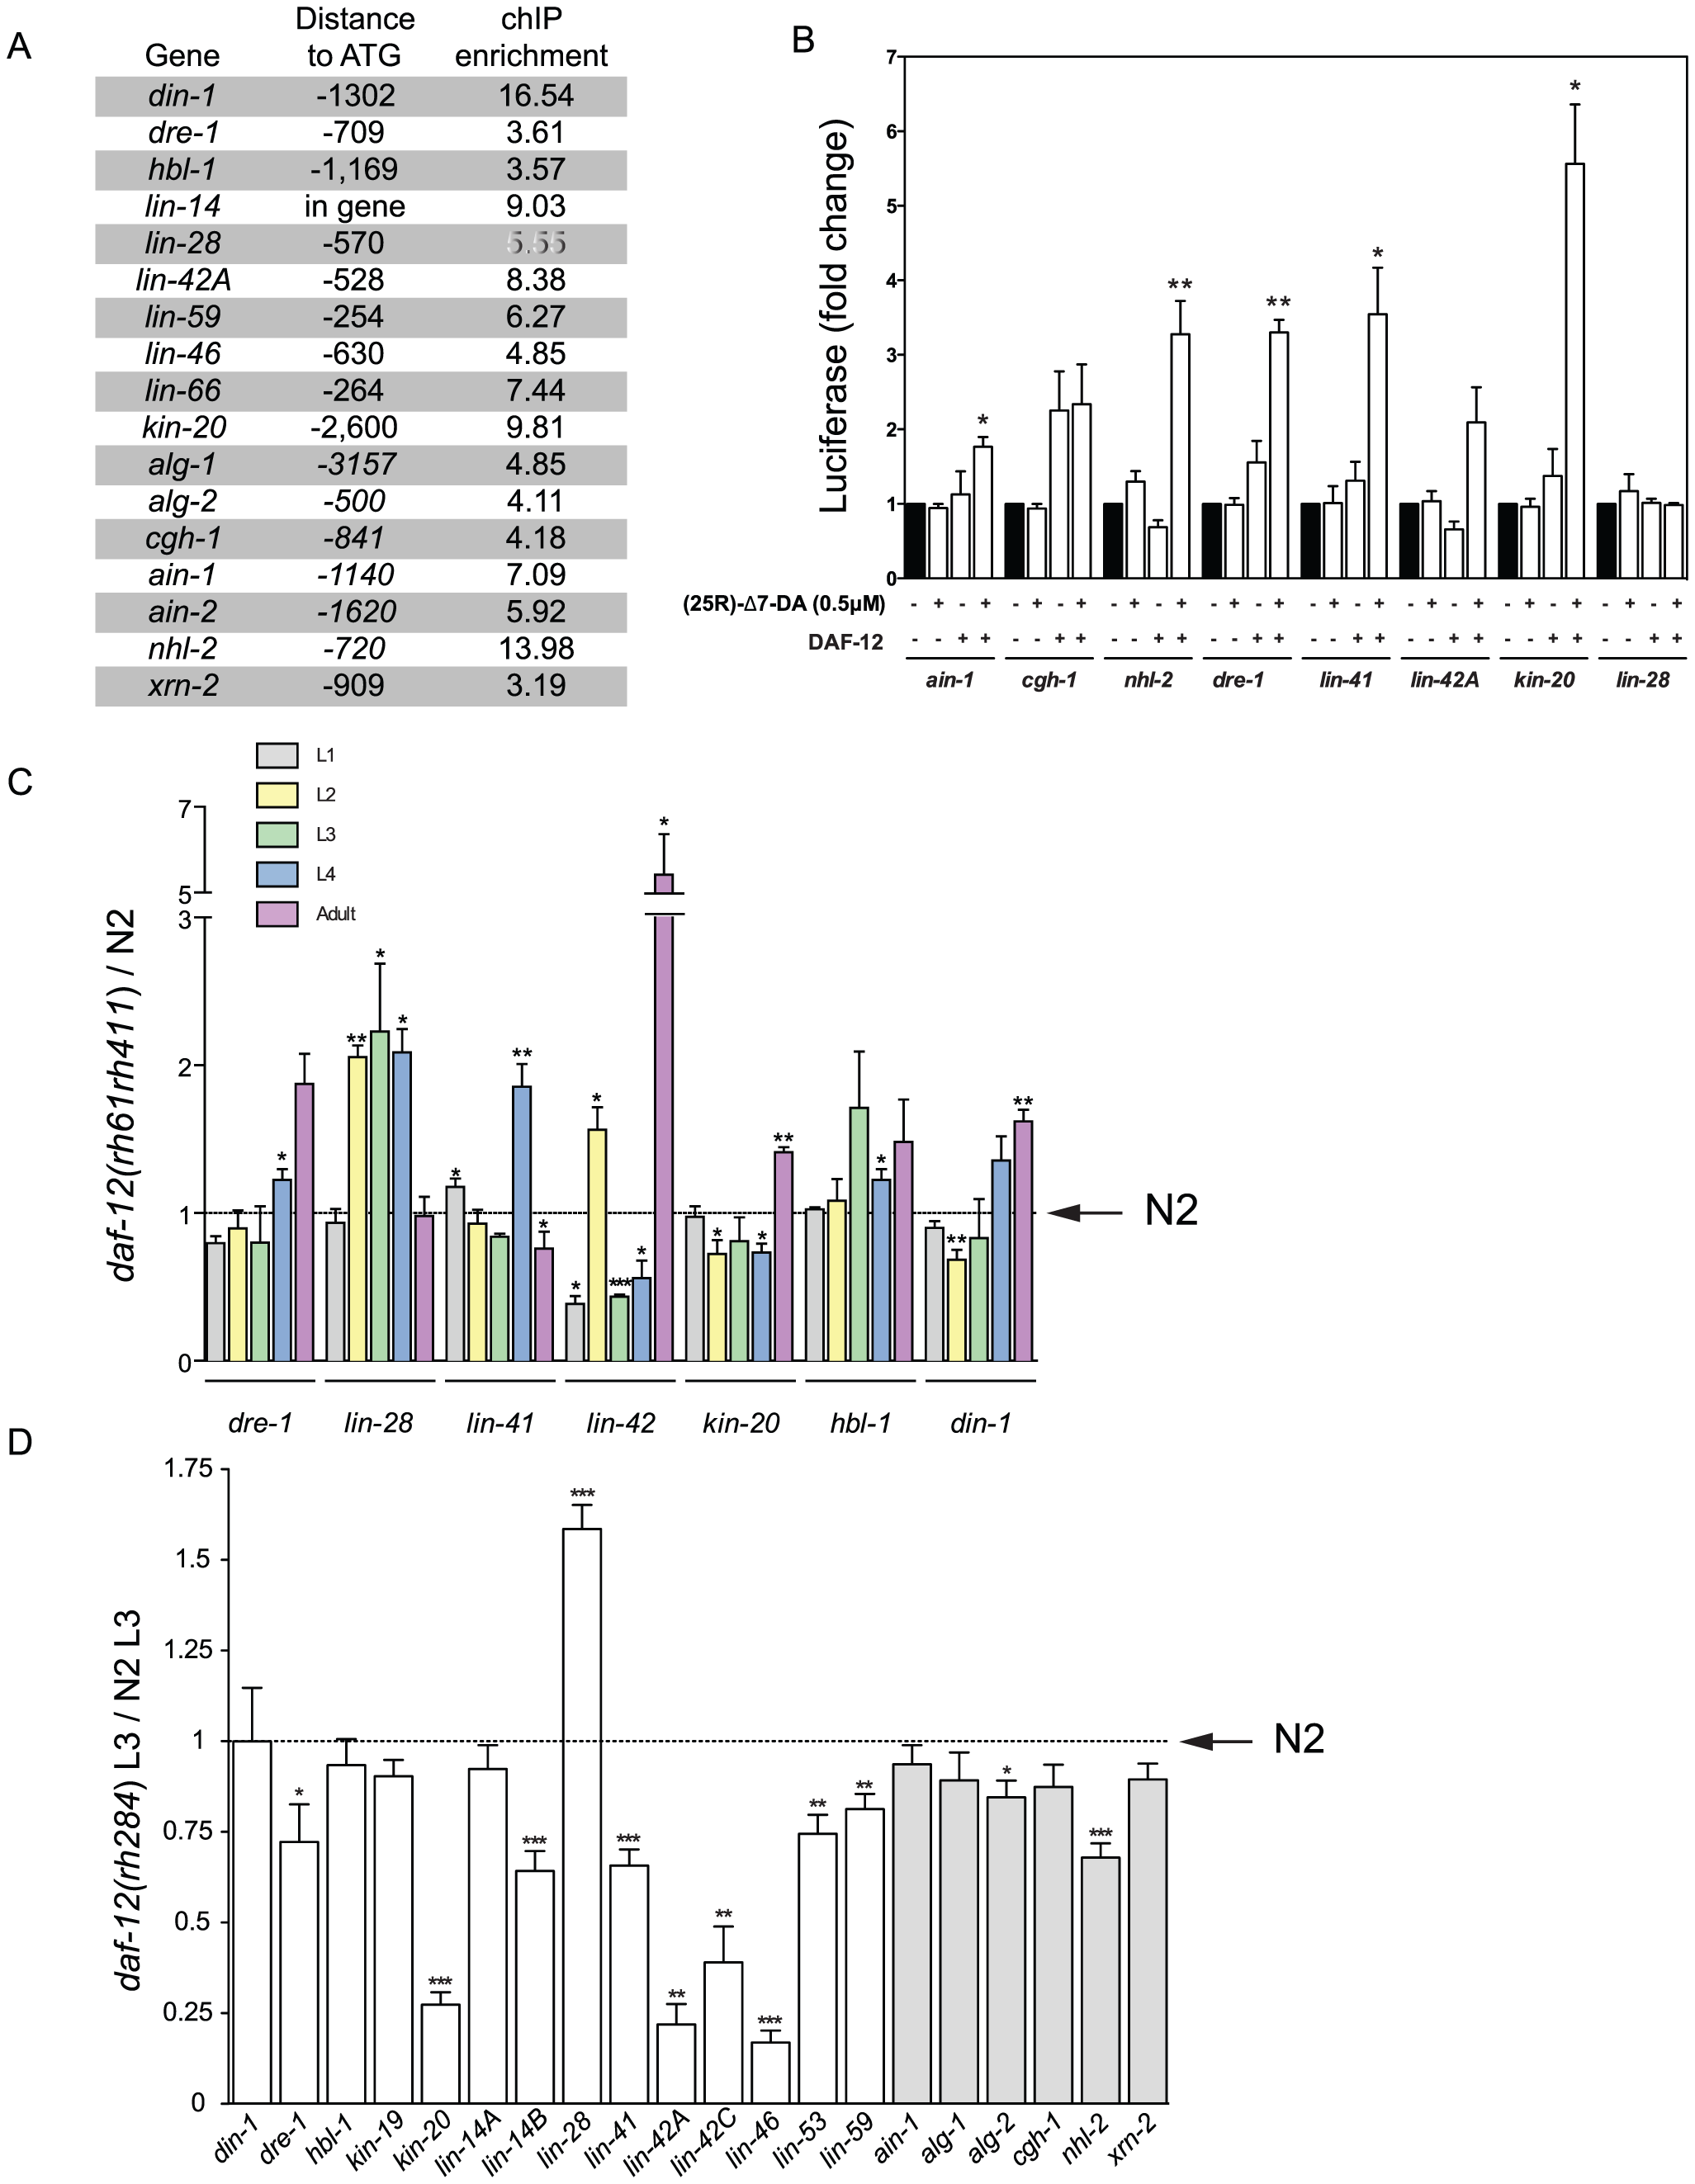 DAF-12 regulates heterochronic and miRISC gene expression.